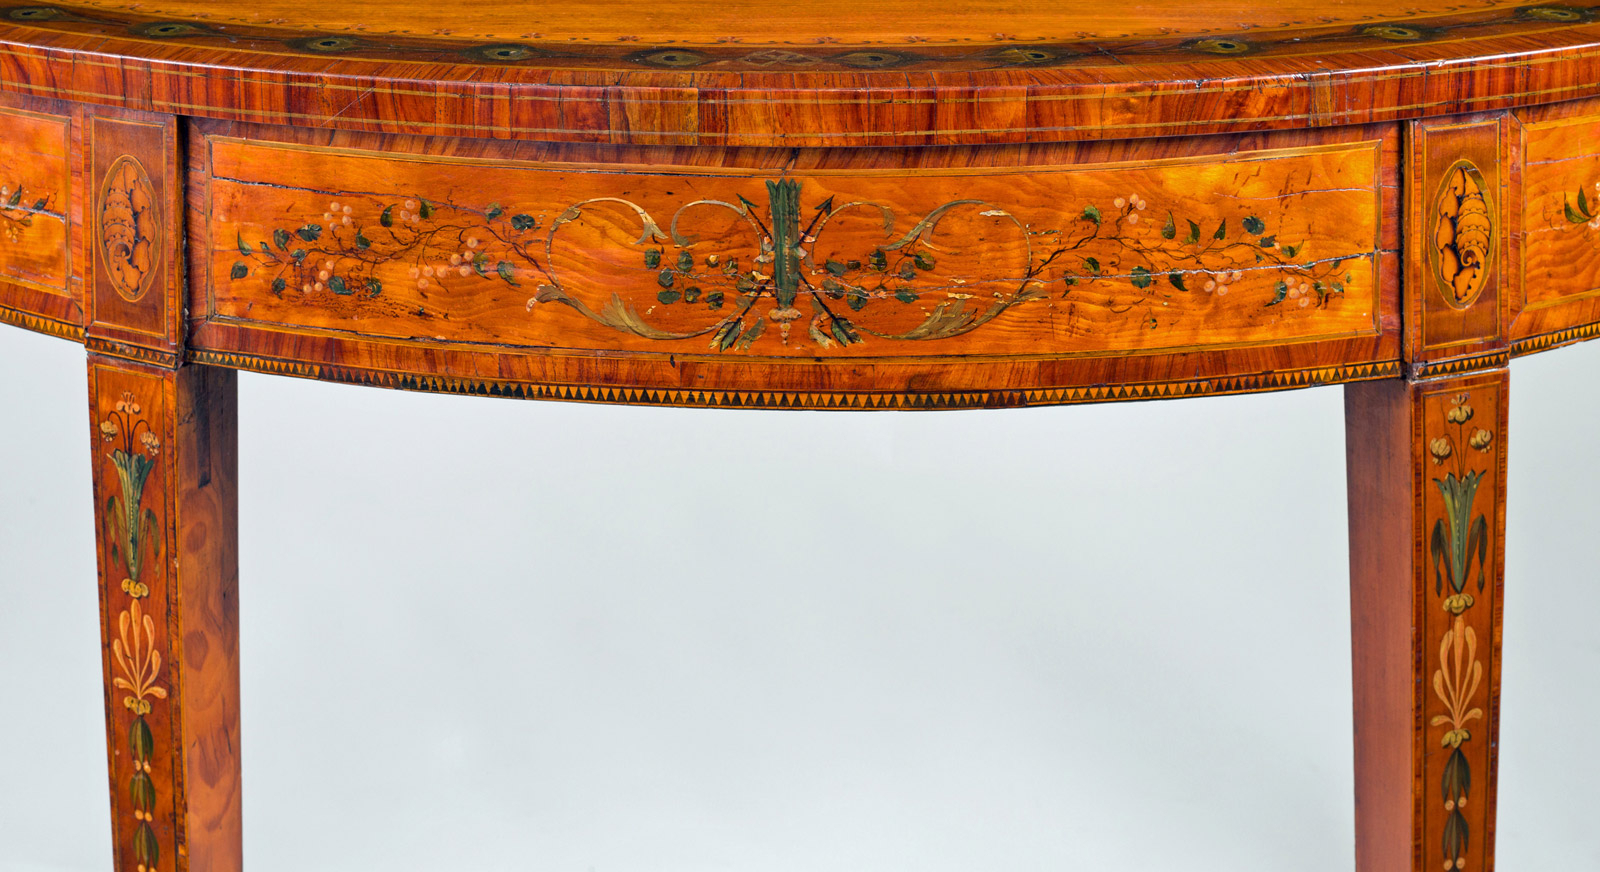 George Iii Inlaid Satinwood D Shaped Console Table Regarding Orange Inlay Console Tables (View 14 of 30)